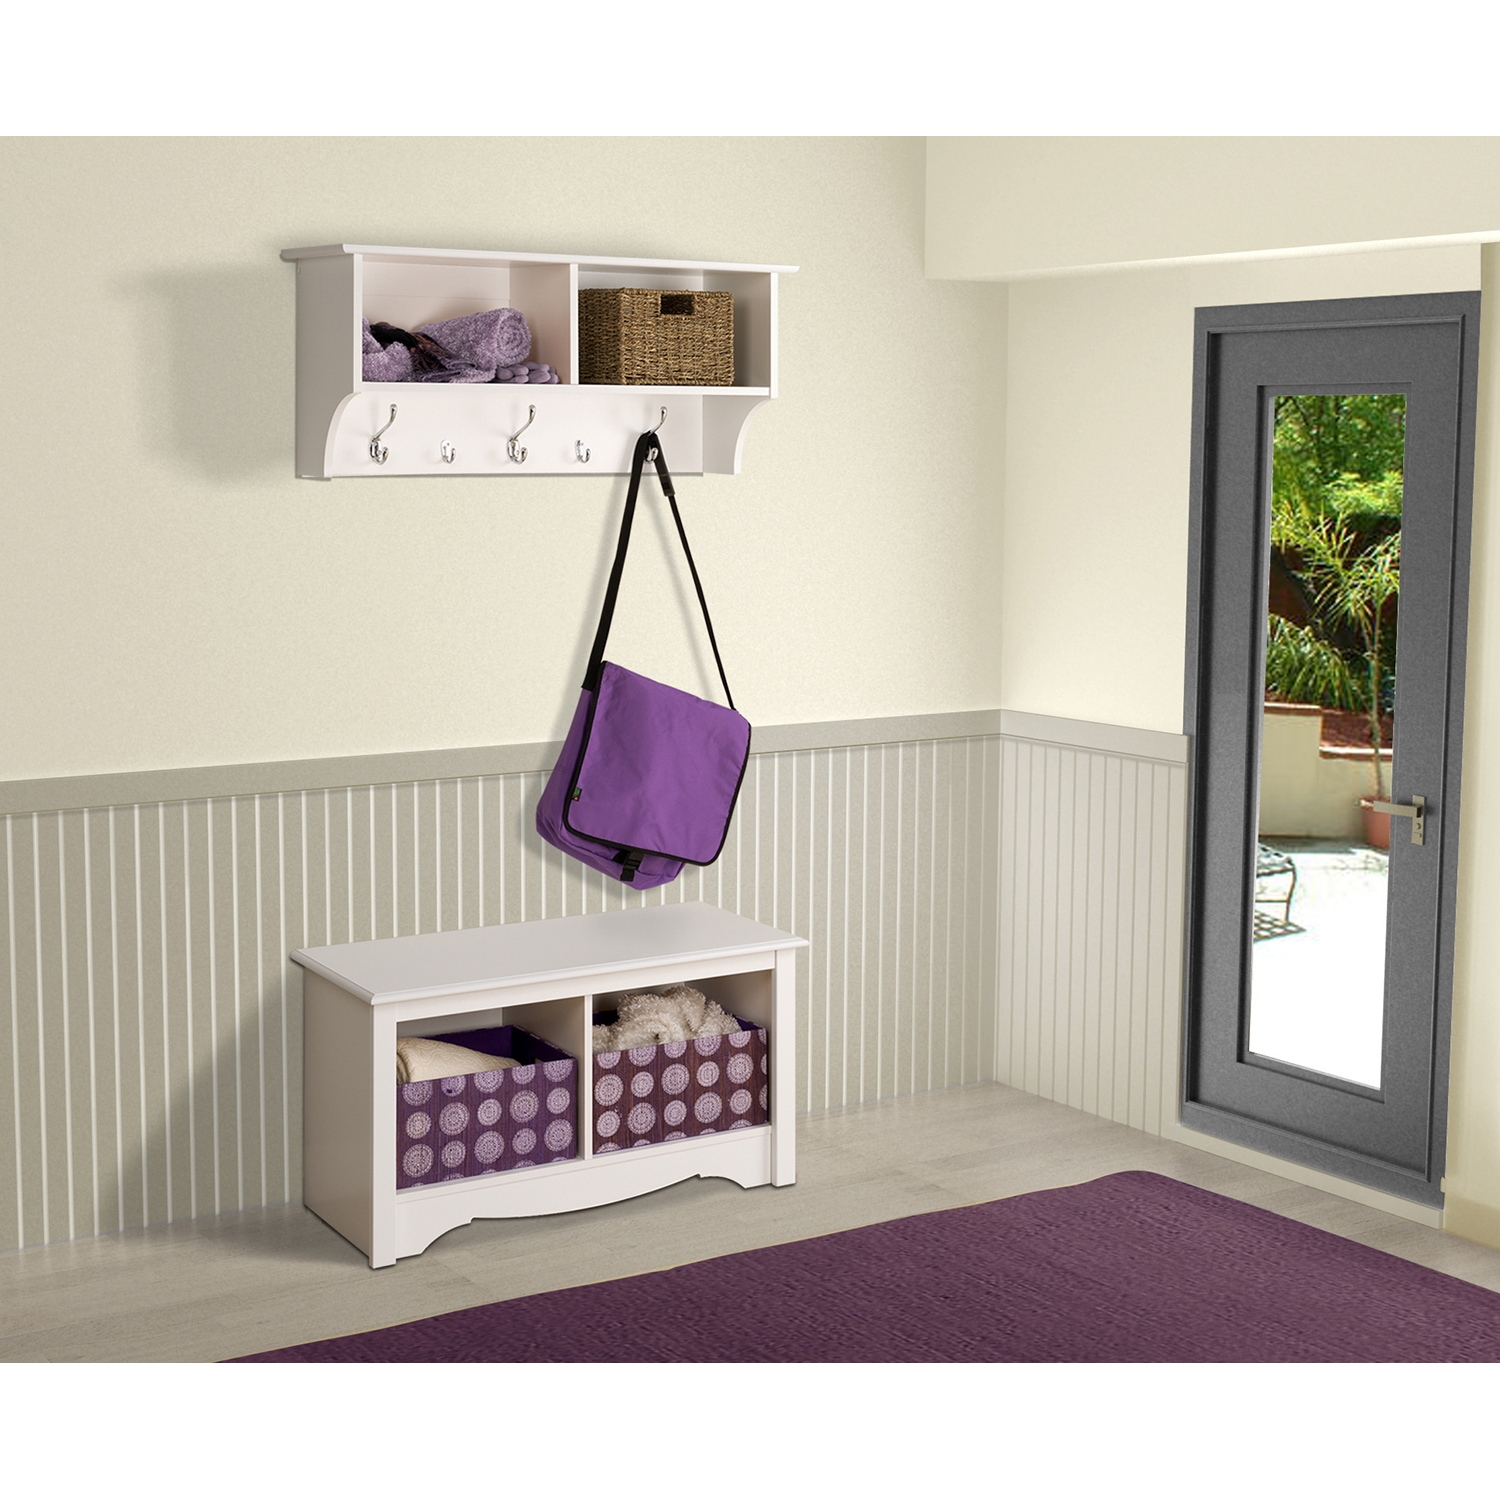 36 Inch Wide Hanging Entryway Shelf - White - PRE-WEC-3616